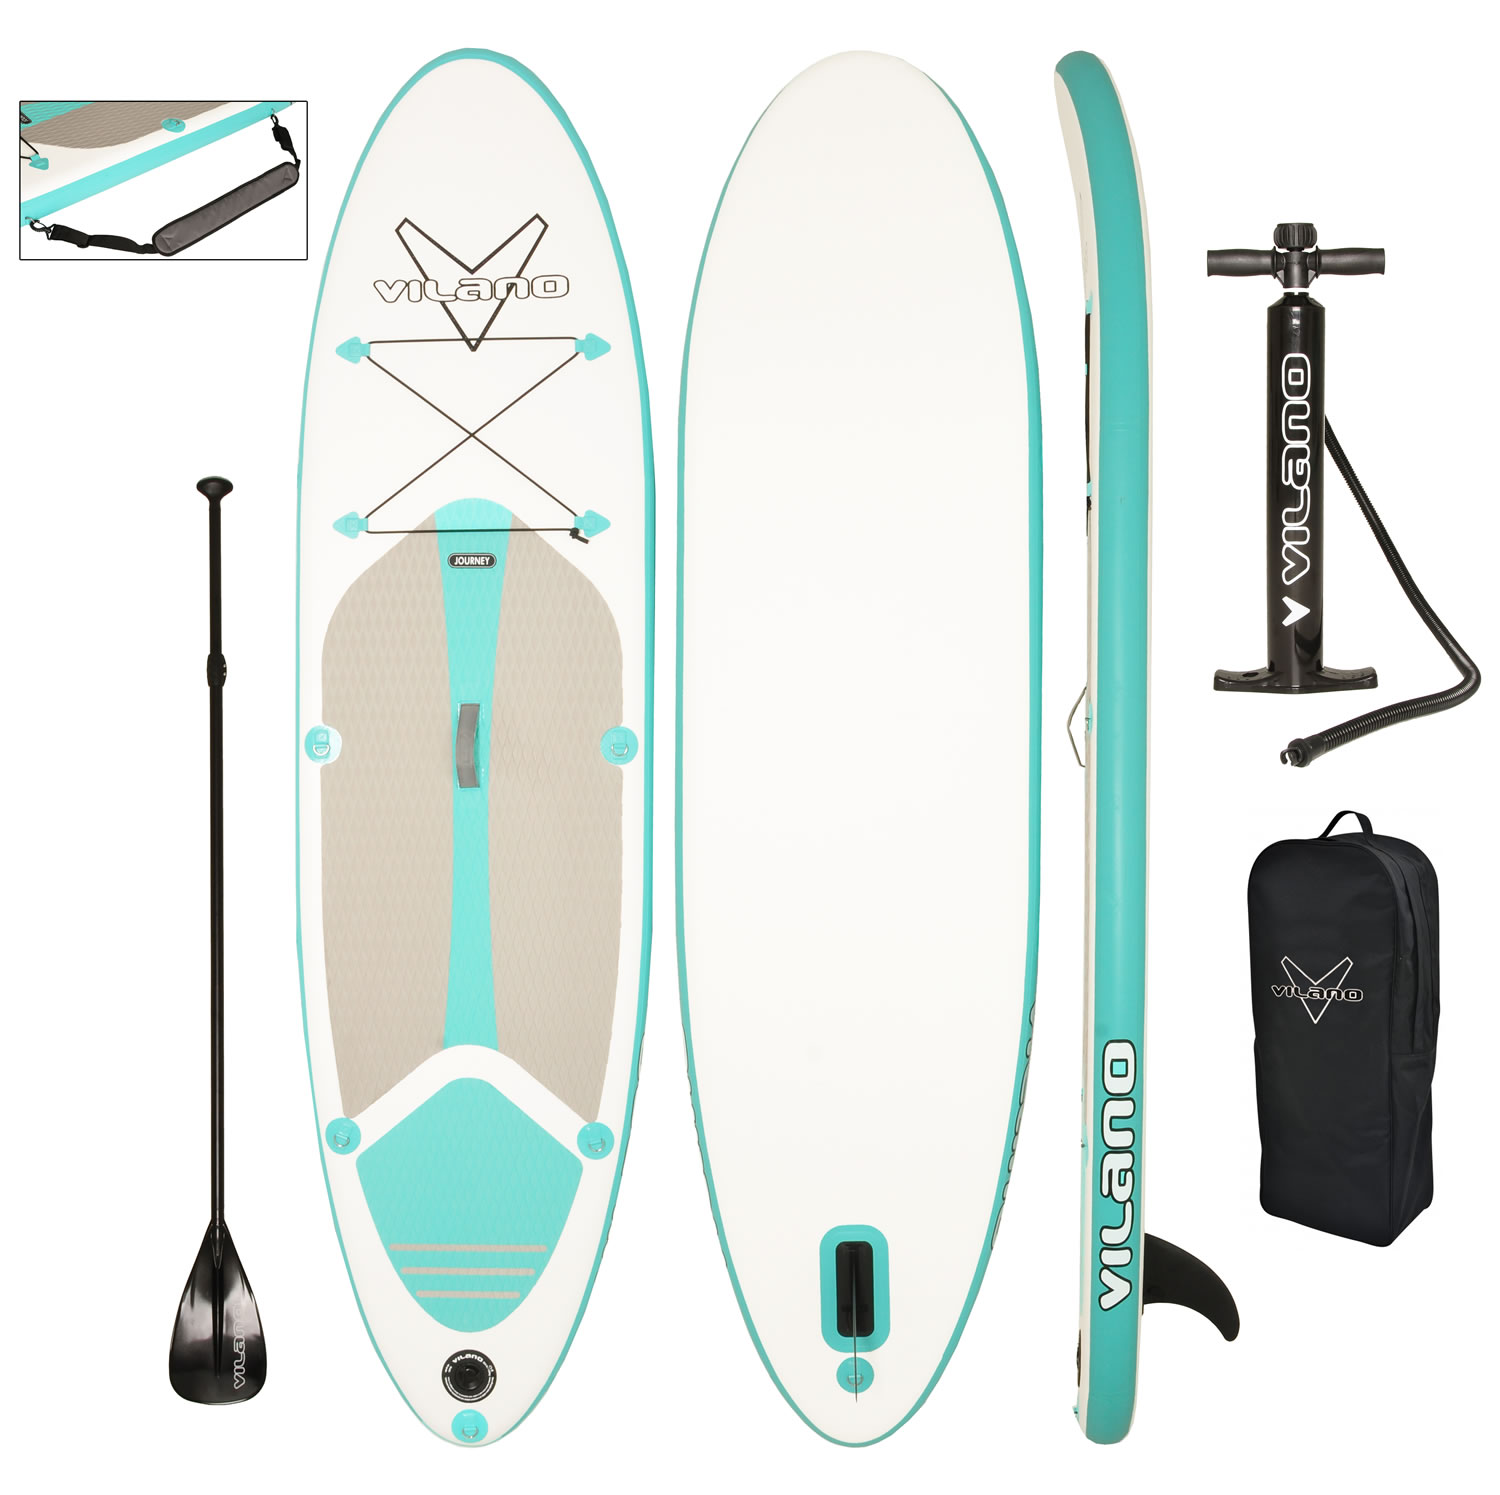 Vilano Journey Inflatable SUP Stand up Paddle Board Kit by